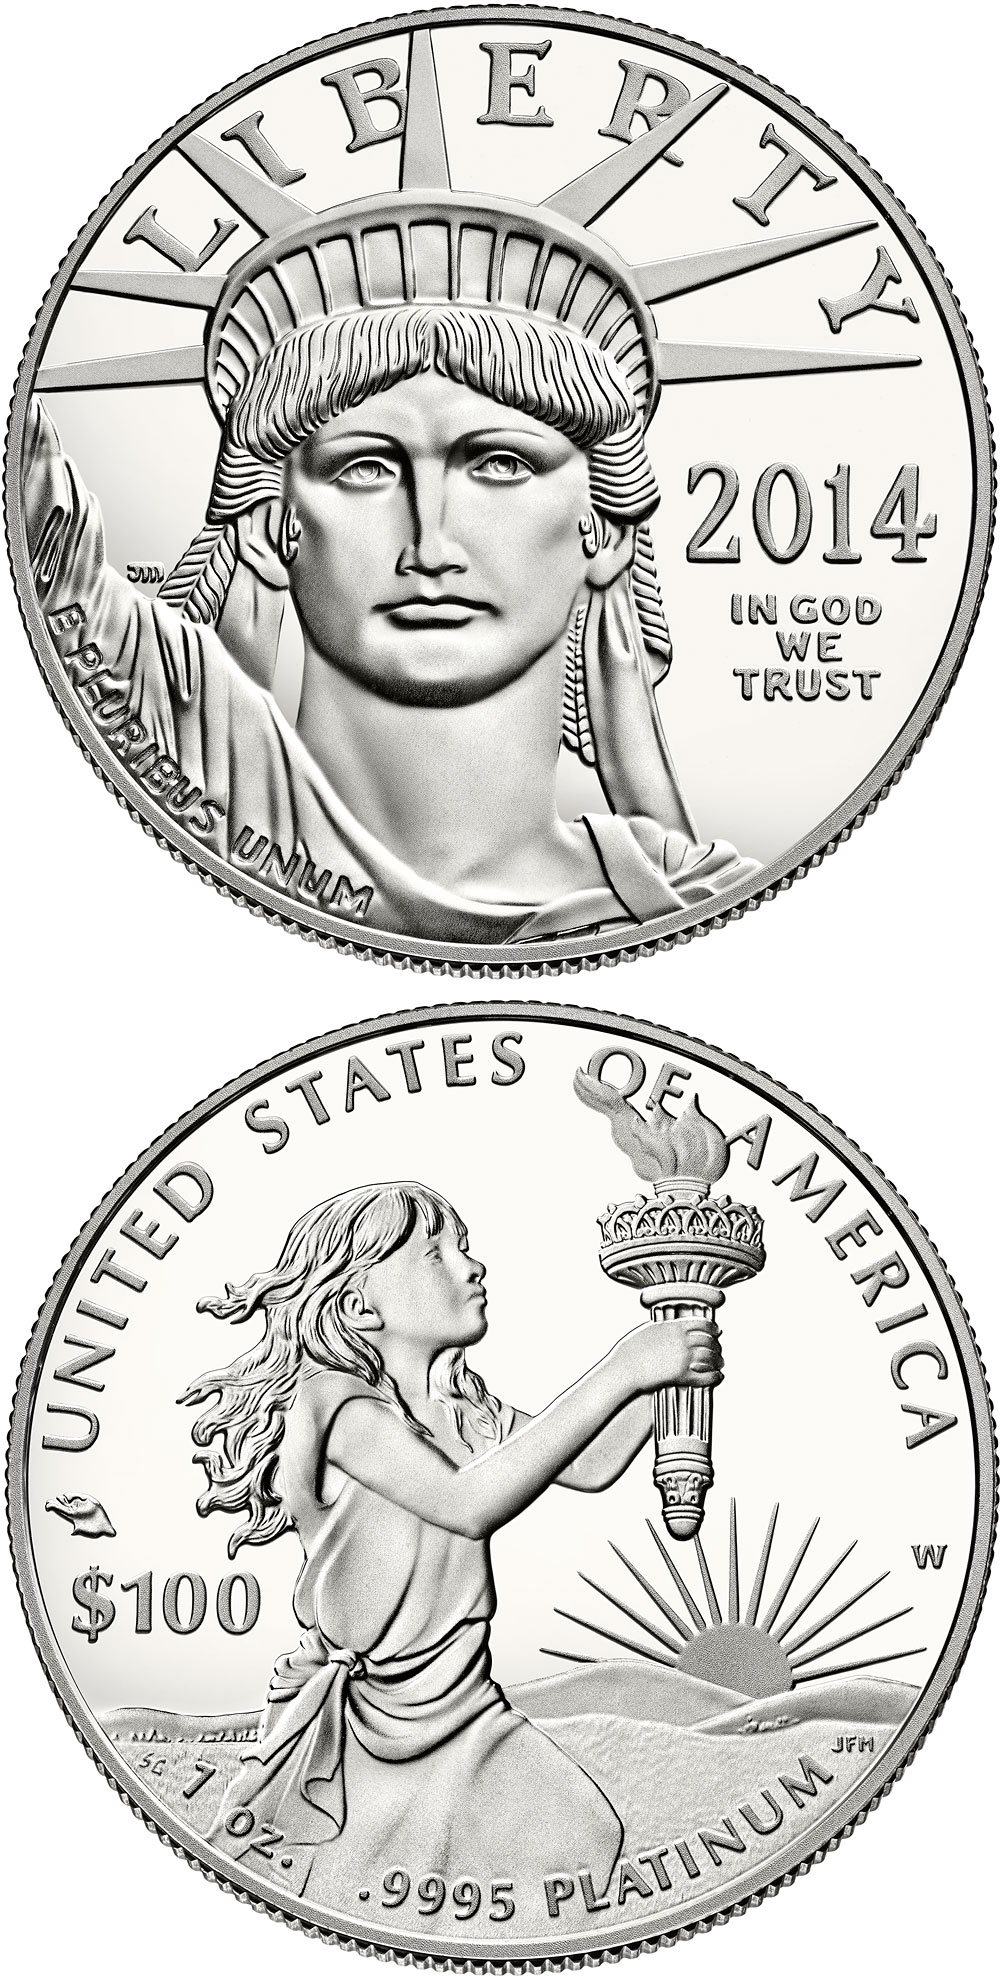 Image of 100 dollars coin - American Eagle Platinum One Ounce Proof Coin | USA 2014